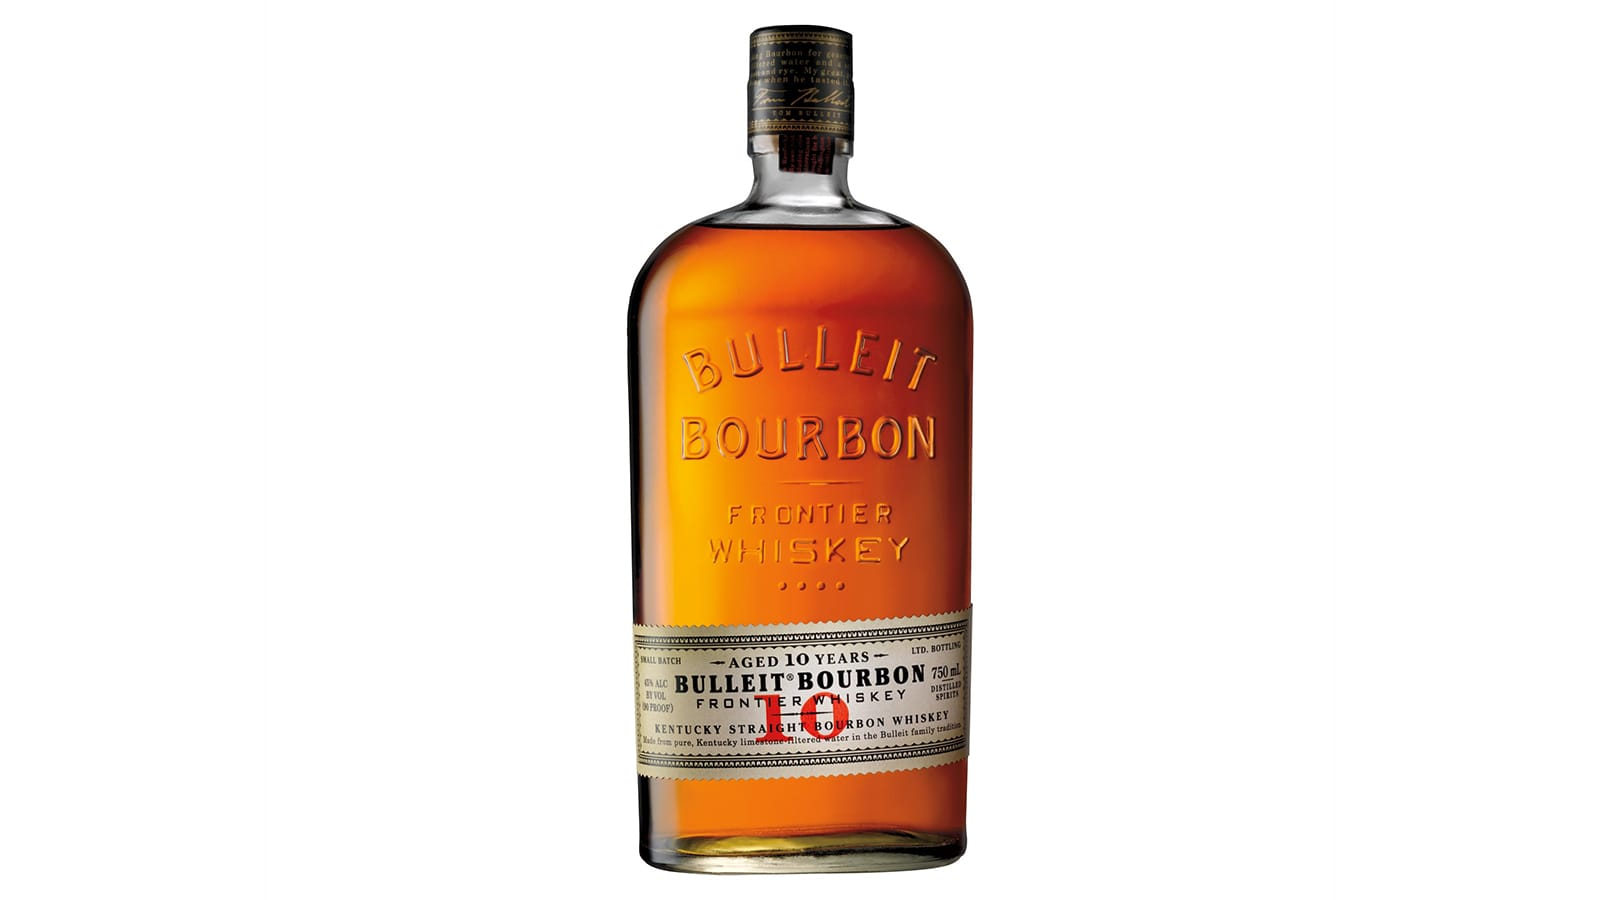 Bulleir Bourbon 10 years old